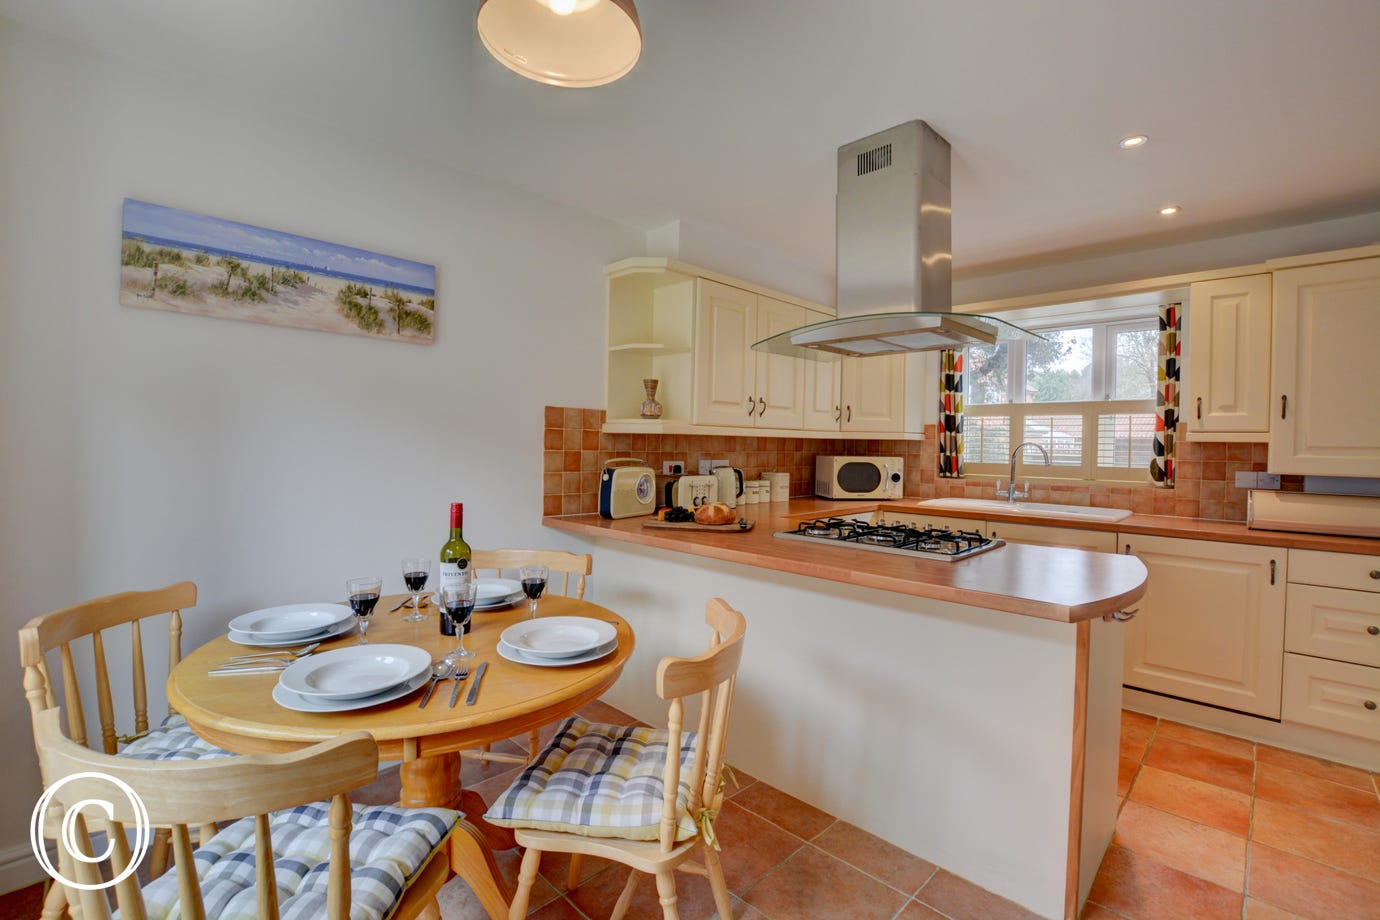 Modern kitchen & dining room area with gas hob, extractor & dining table with four chairs